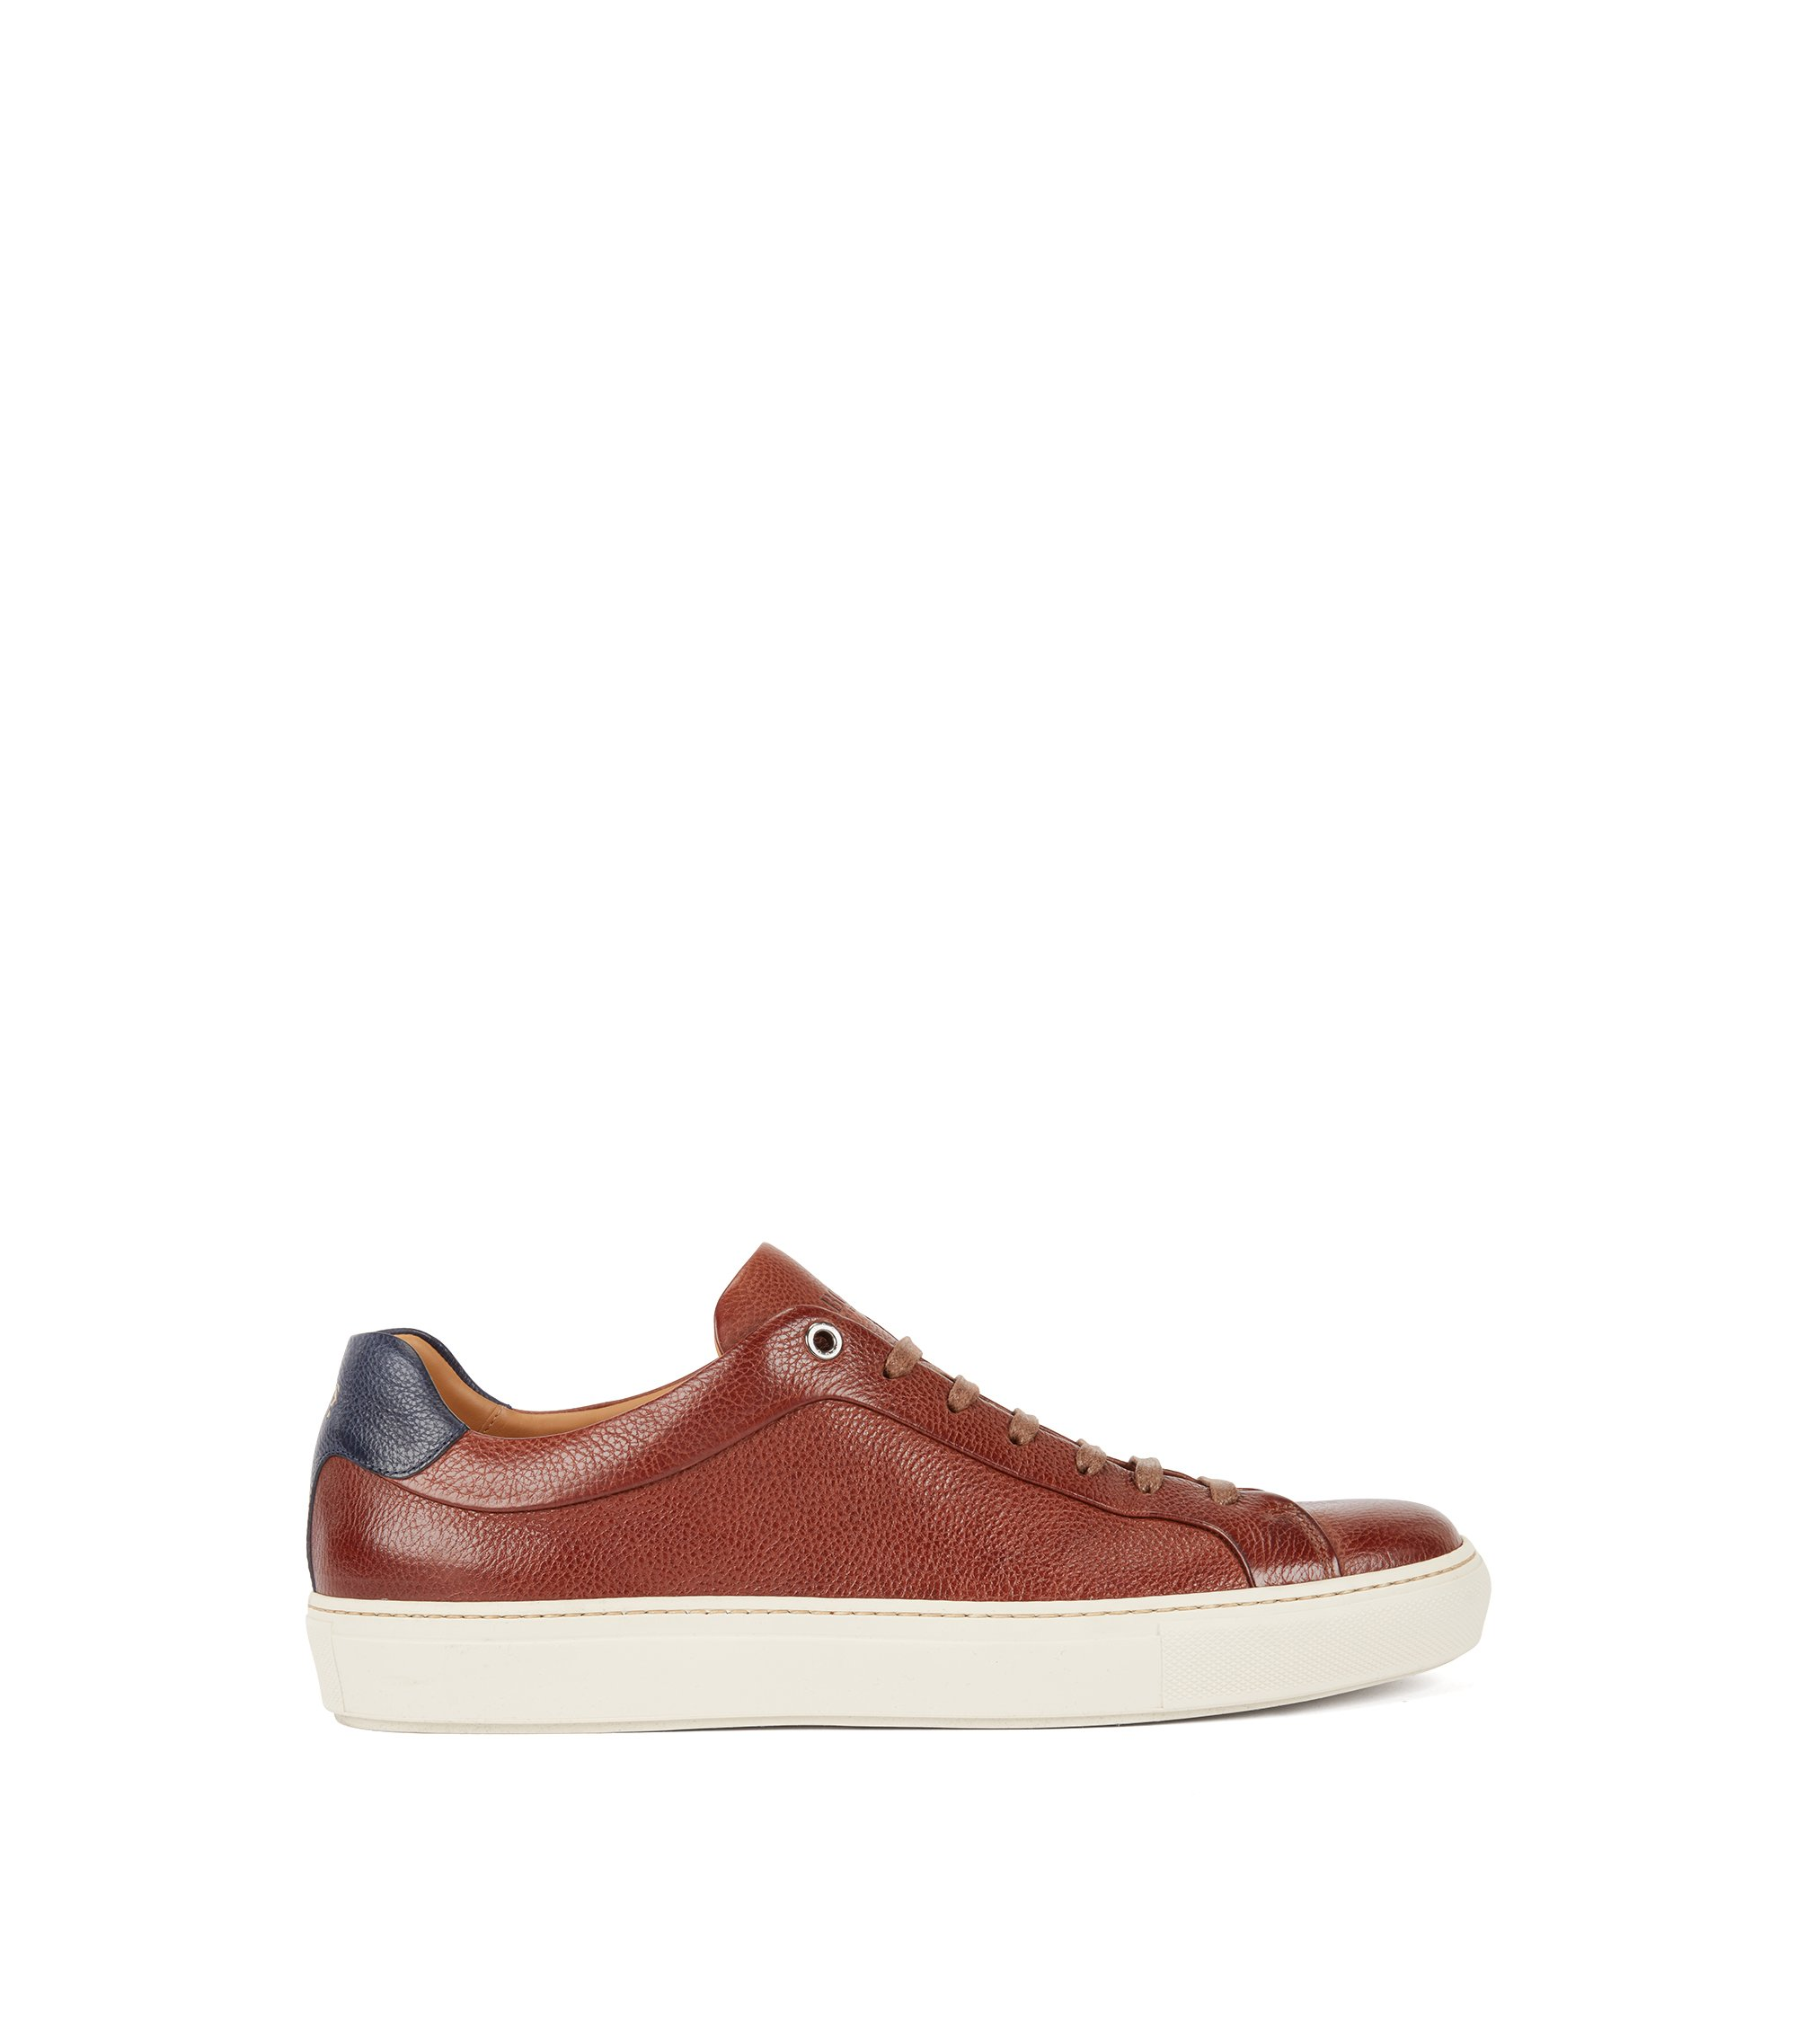 Baskets de style tennis en cuir de veau grainé, Marron